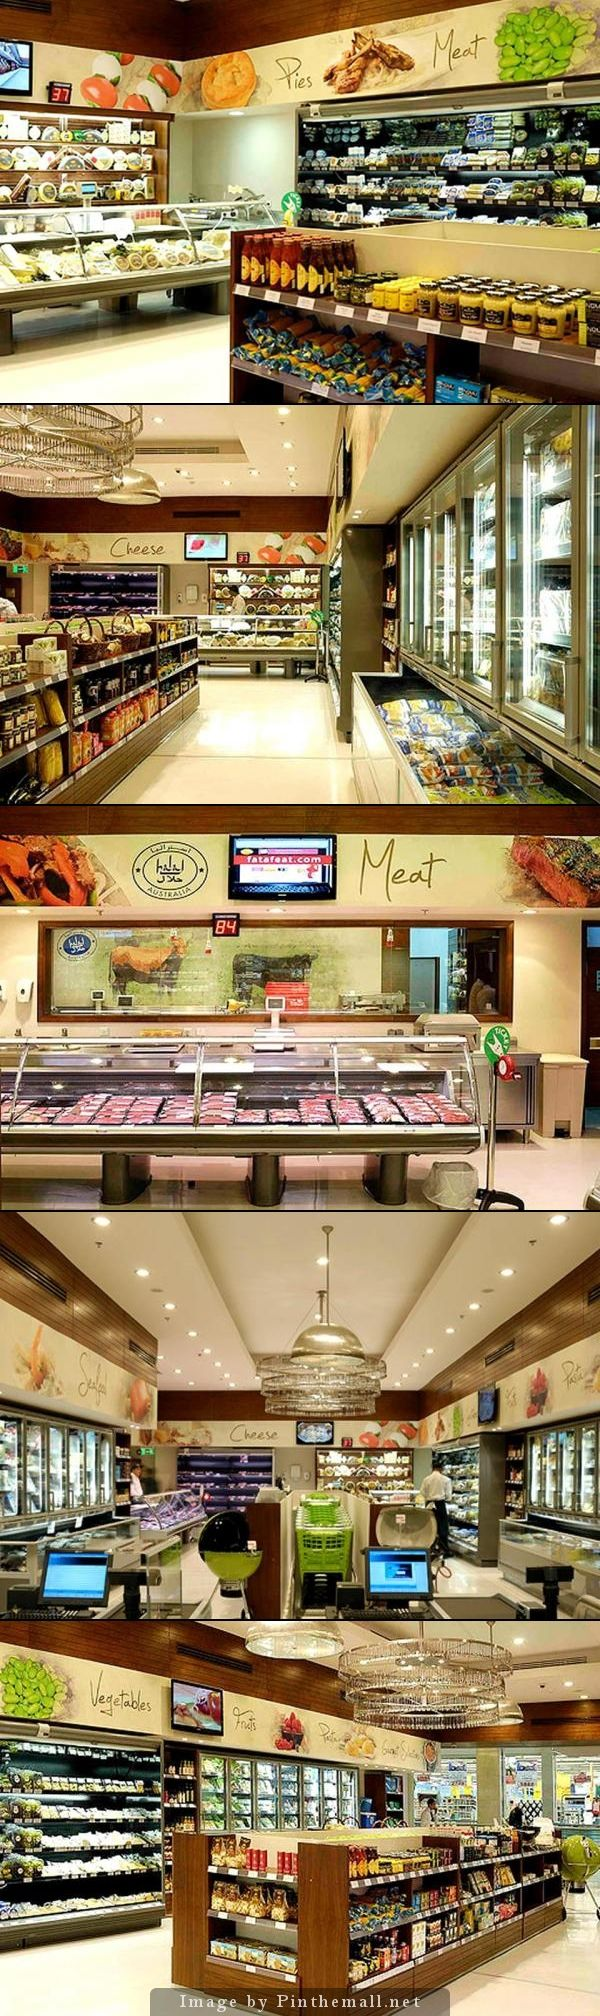 D health food store in l a - Clean Retail Grocery Store Interior Design Of Gourmet Egypt Cairo By Eklego Design Egypt Created